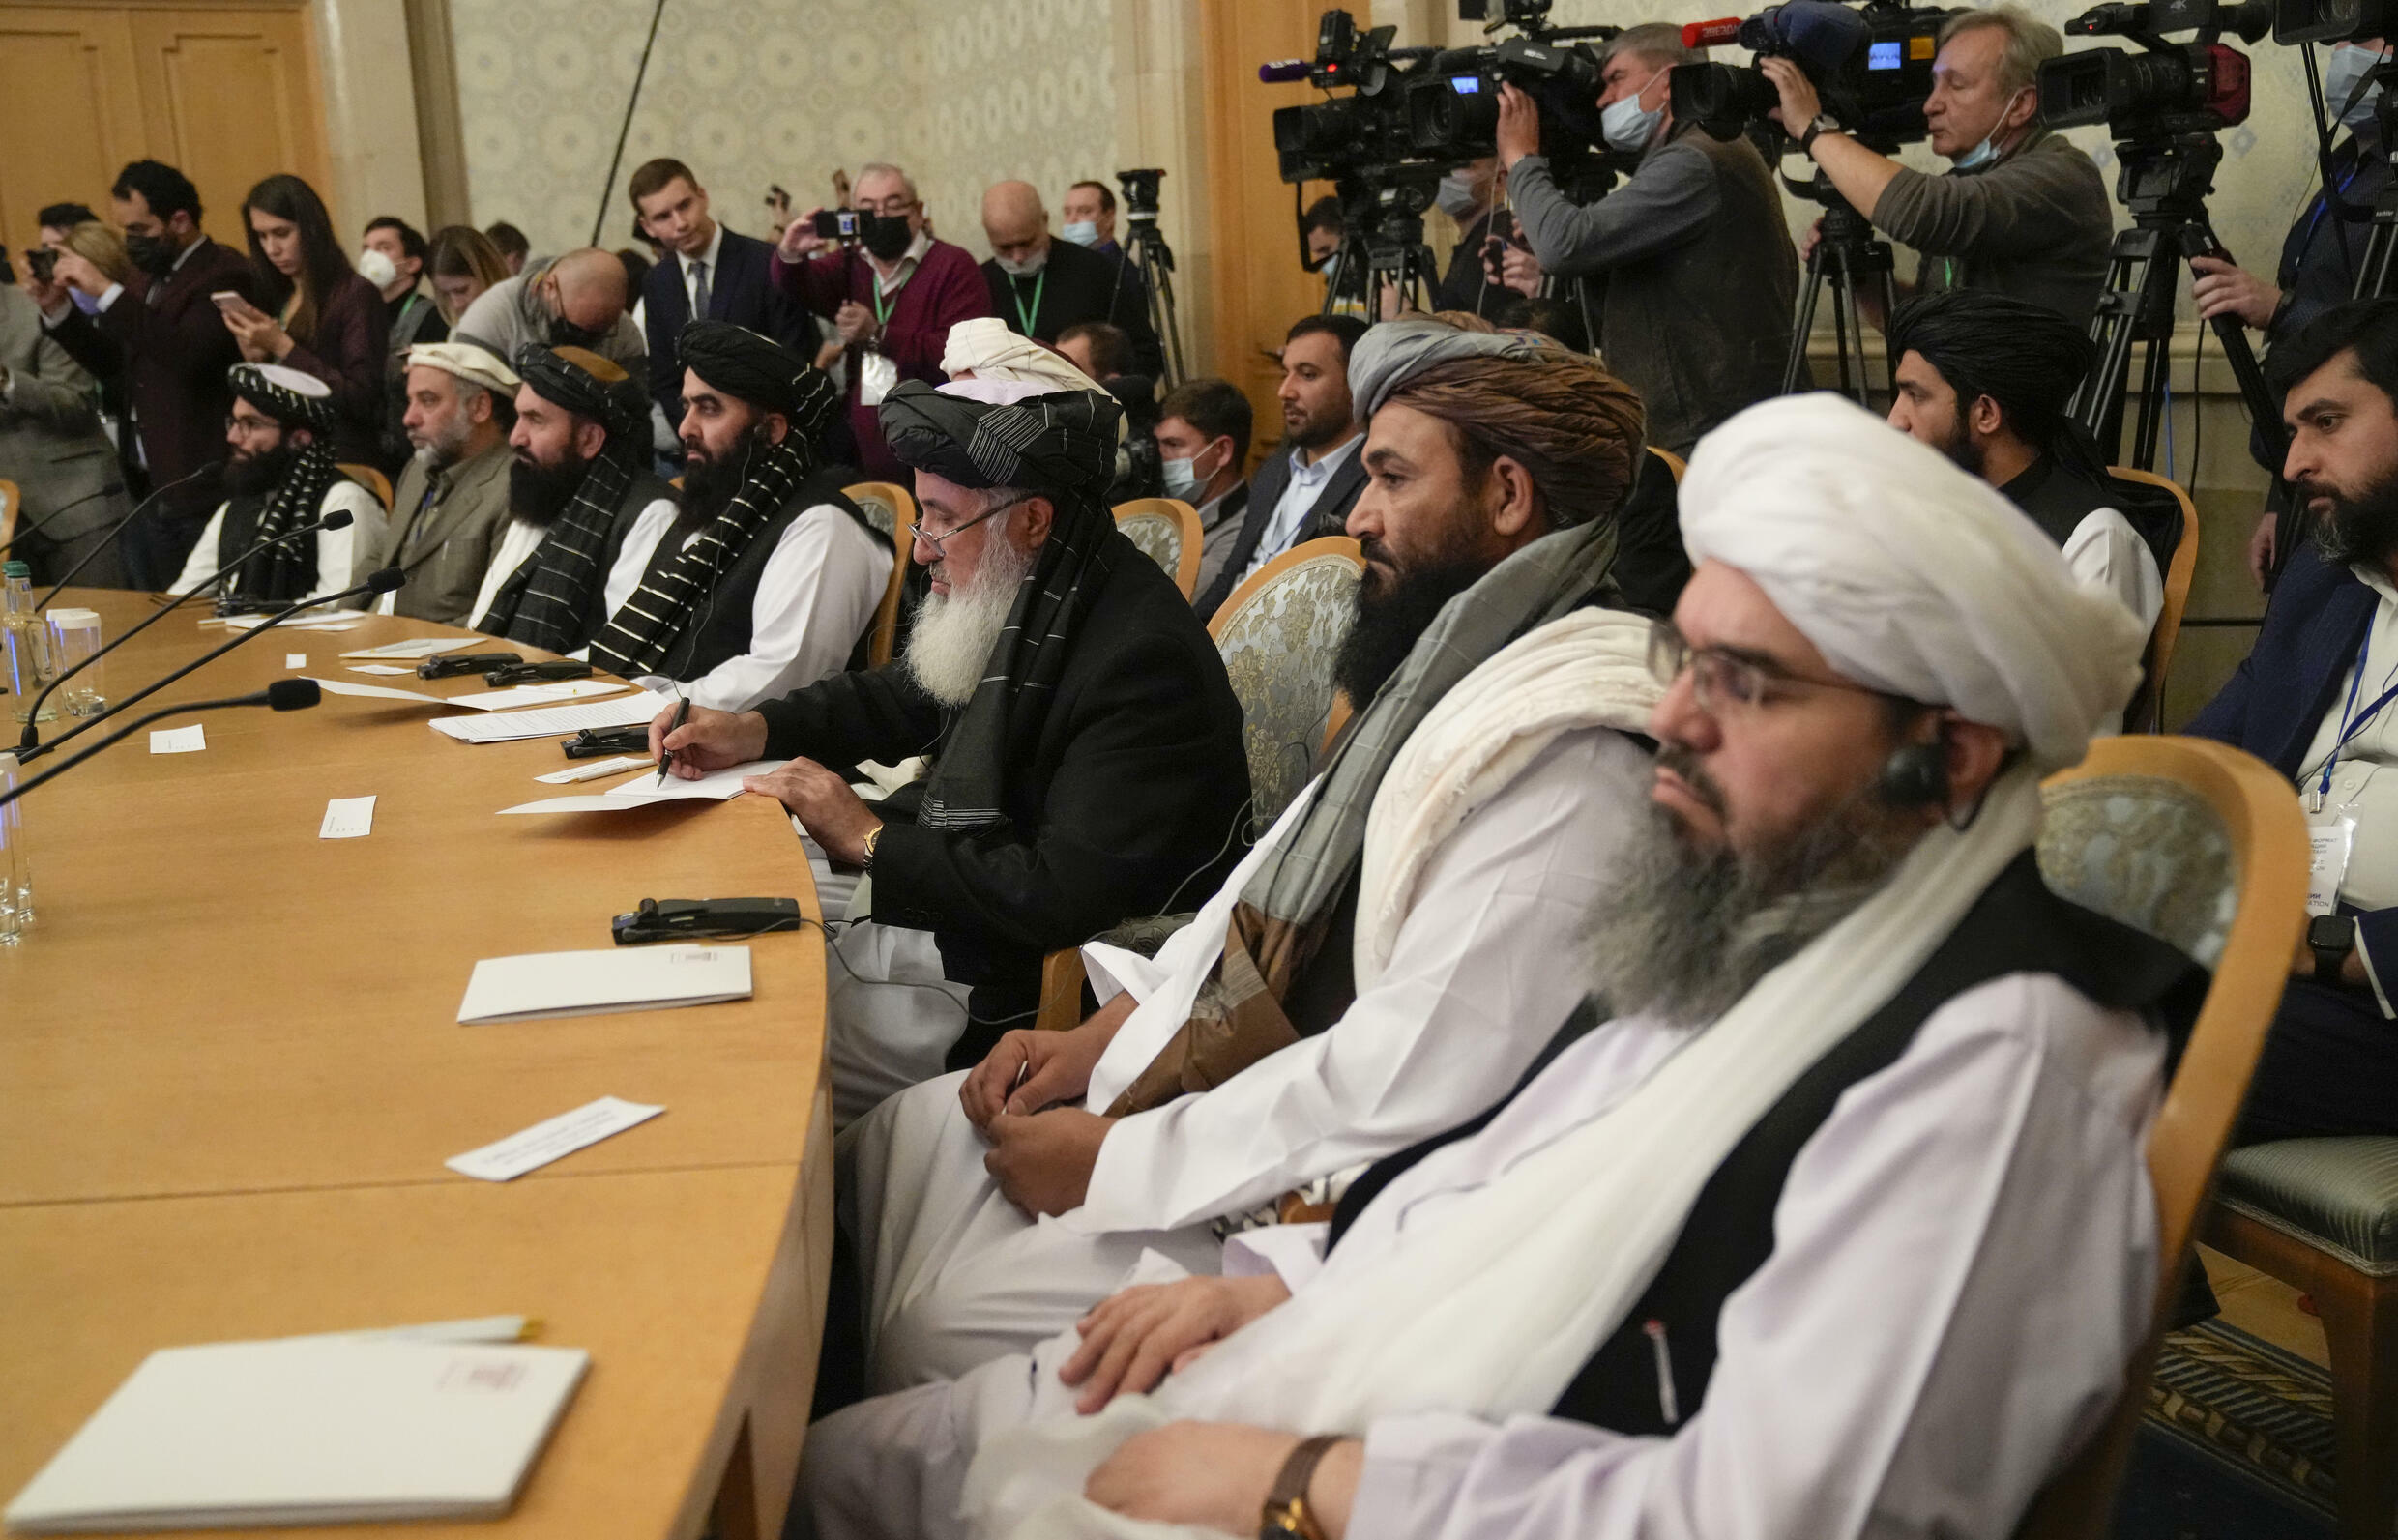 The talks in Moscow are one of the Taliban's most high-profile international meetings since seizing power in mid-August.